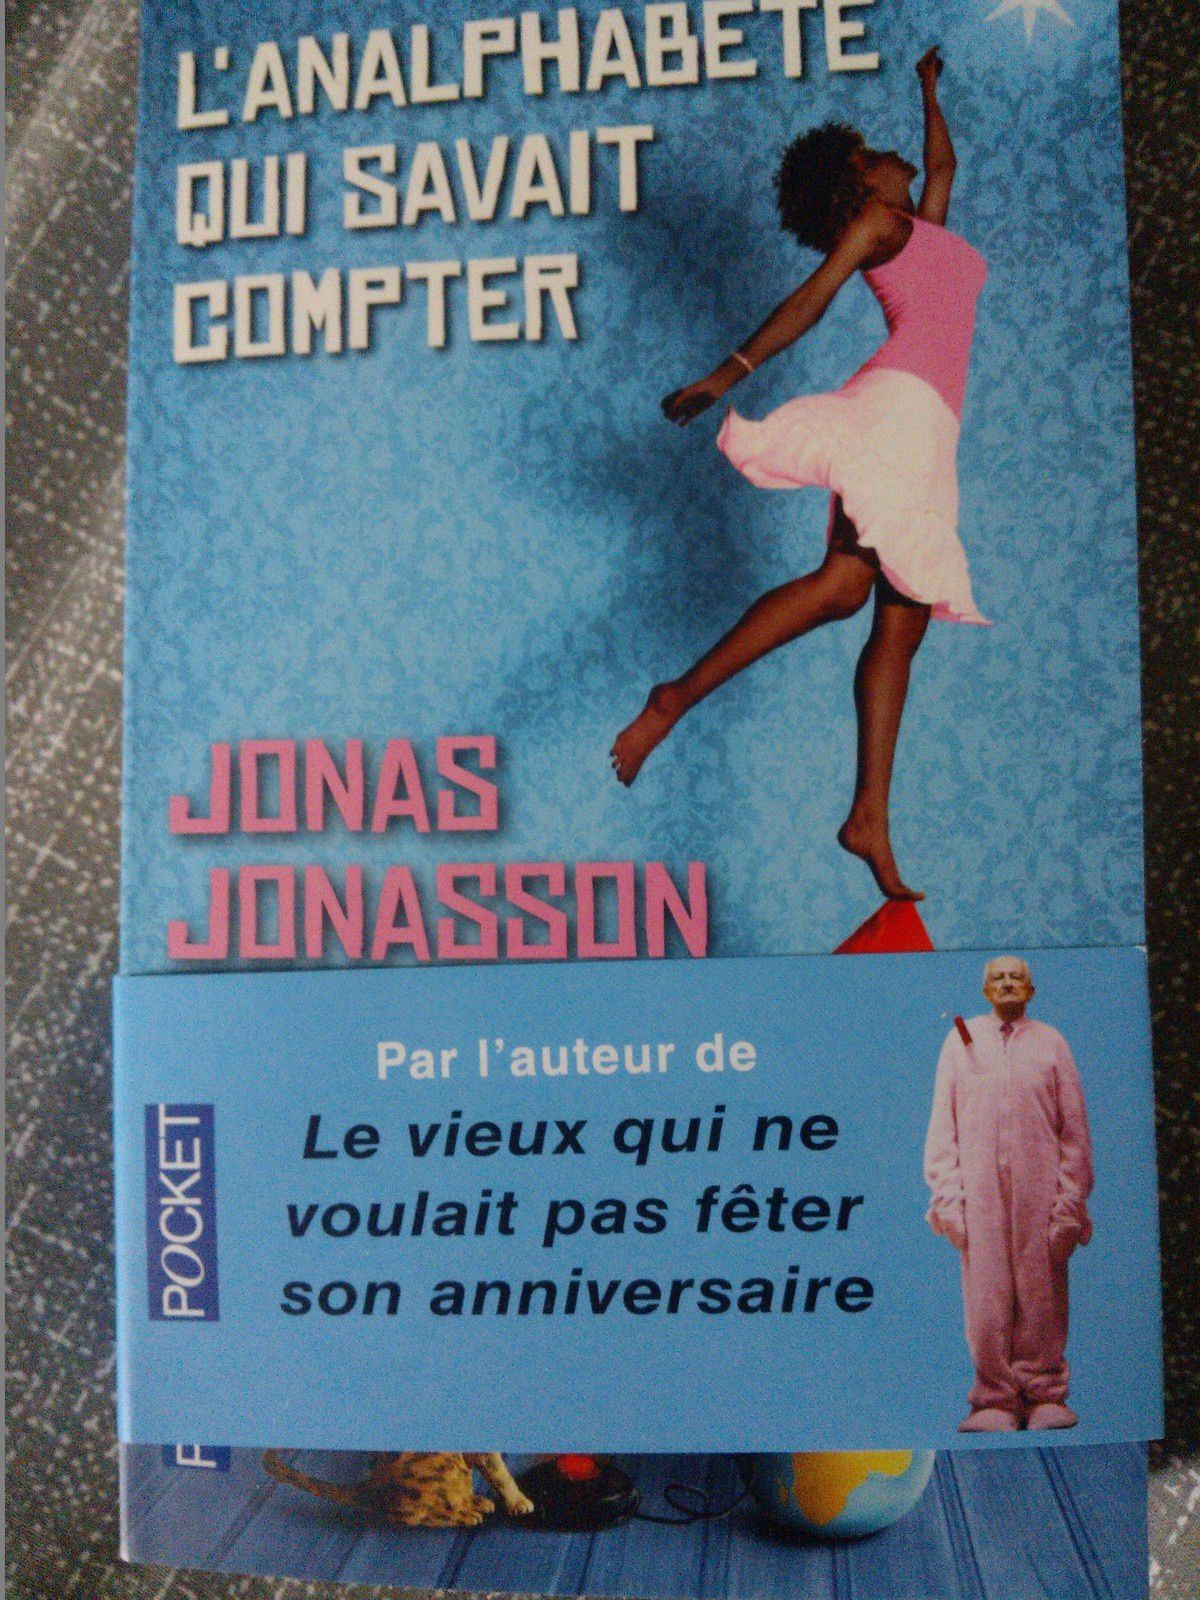 13 à table ! ; l'analphabète qui savait compter de Jonas Jonasson